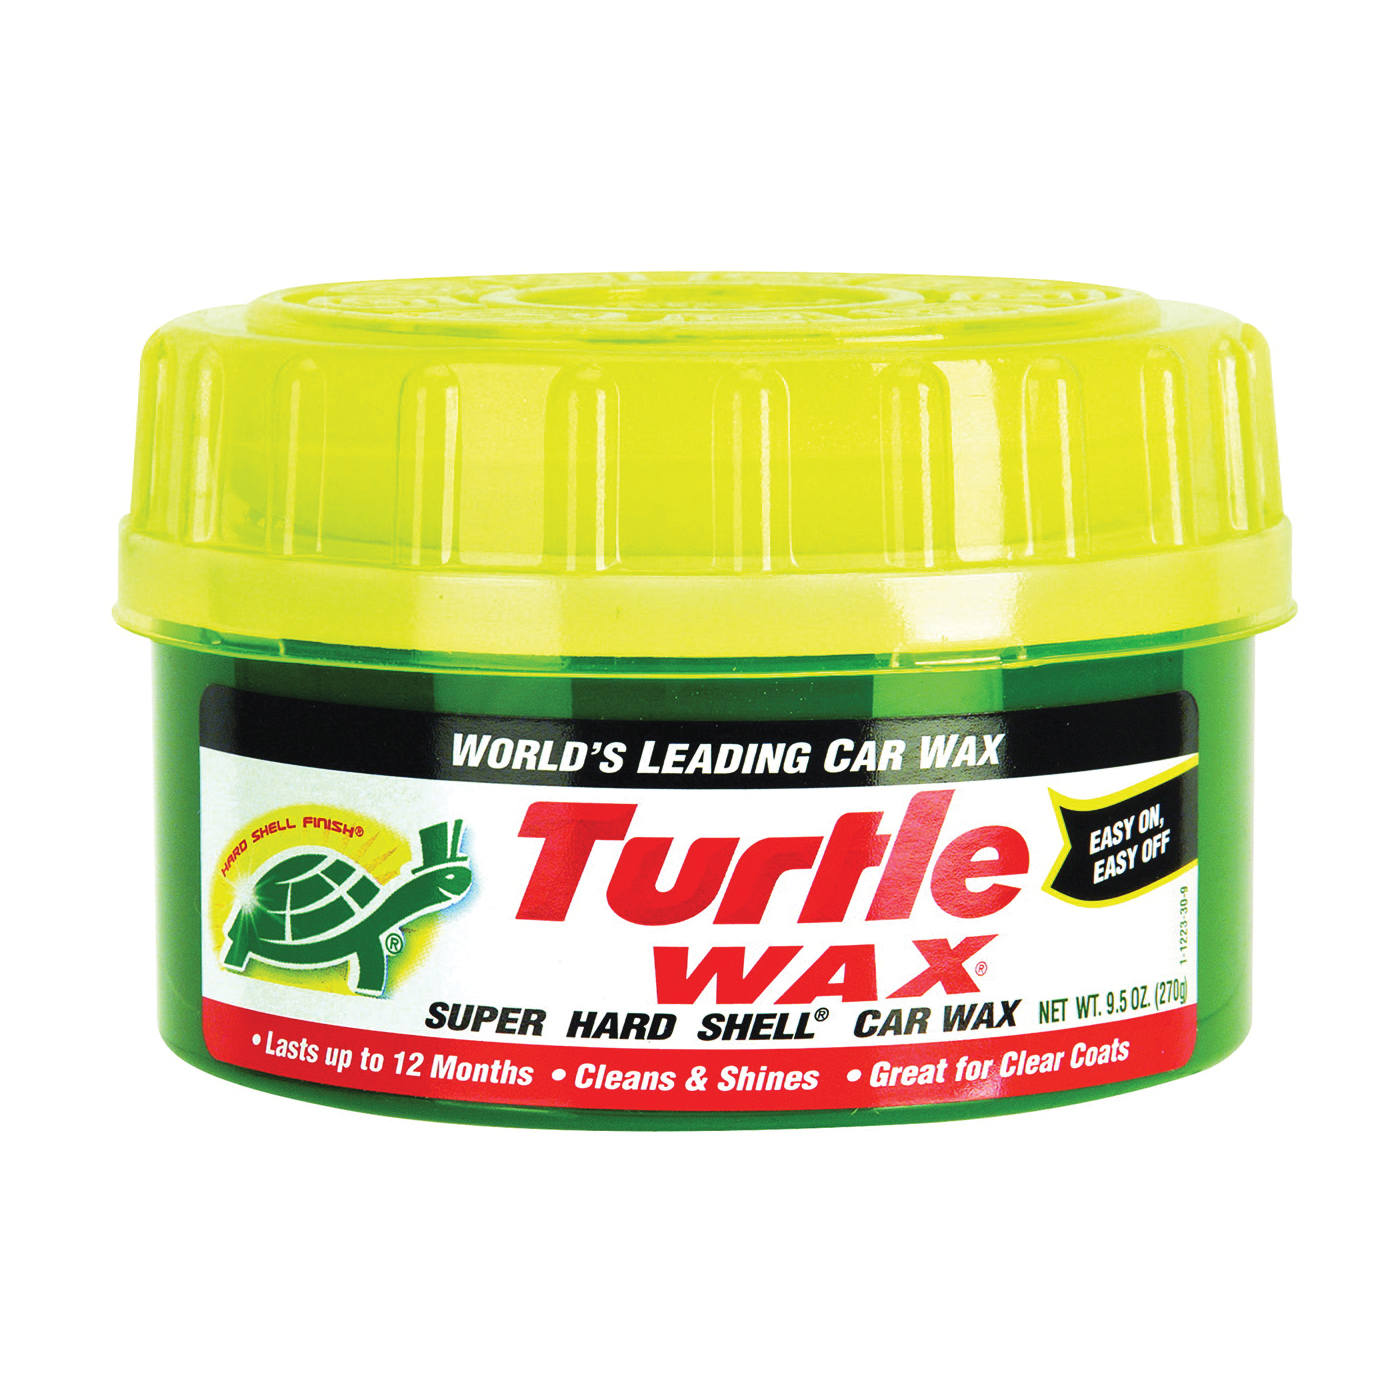 Picture of Turtle Wax SUPER HARD SHELL T223R Car Wax, 9.5 oz Package, Paste, Solvent